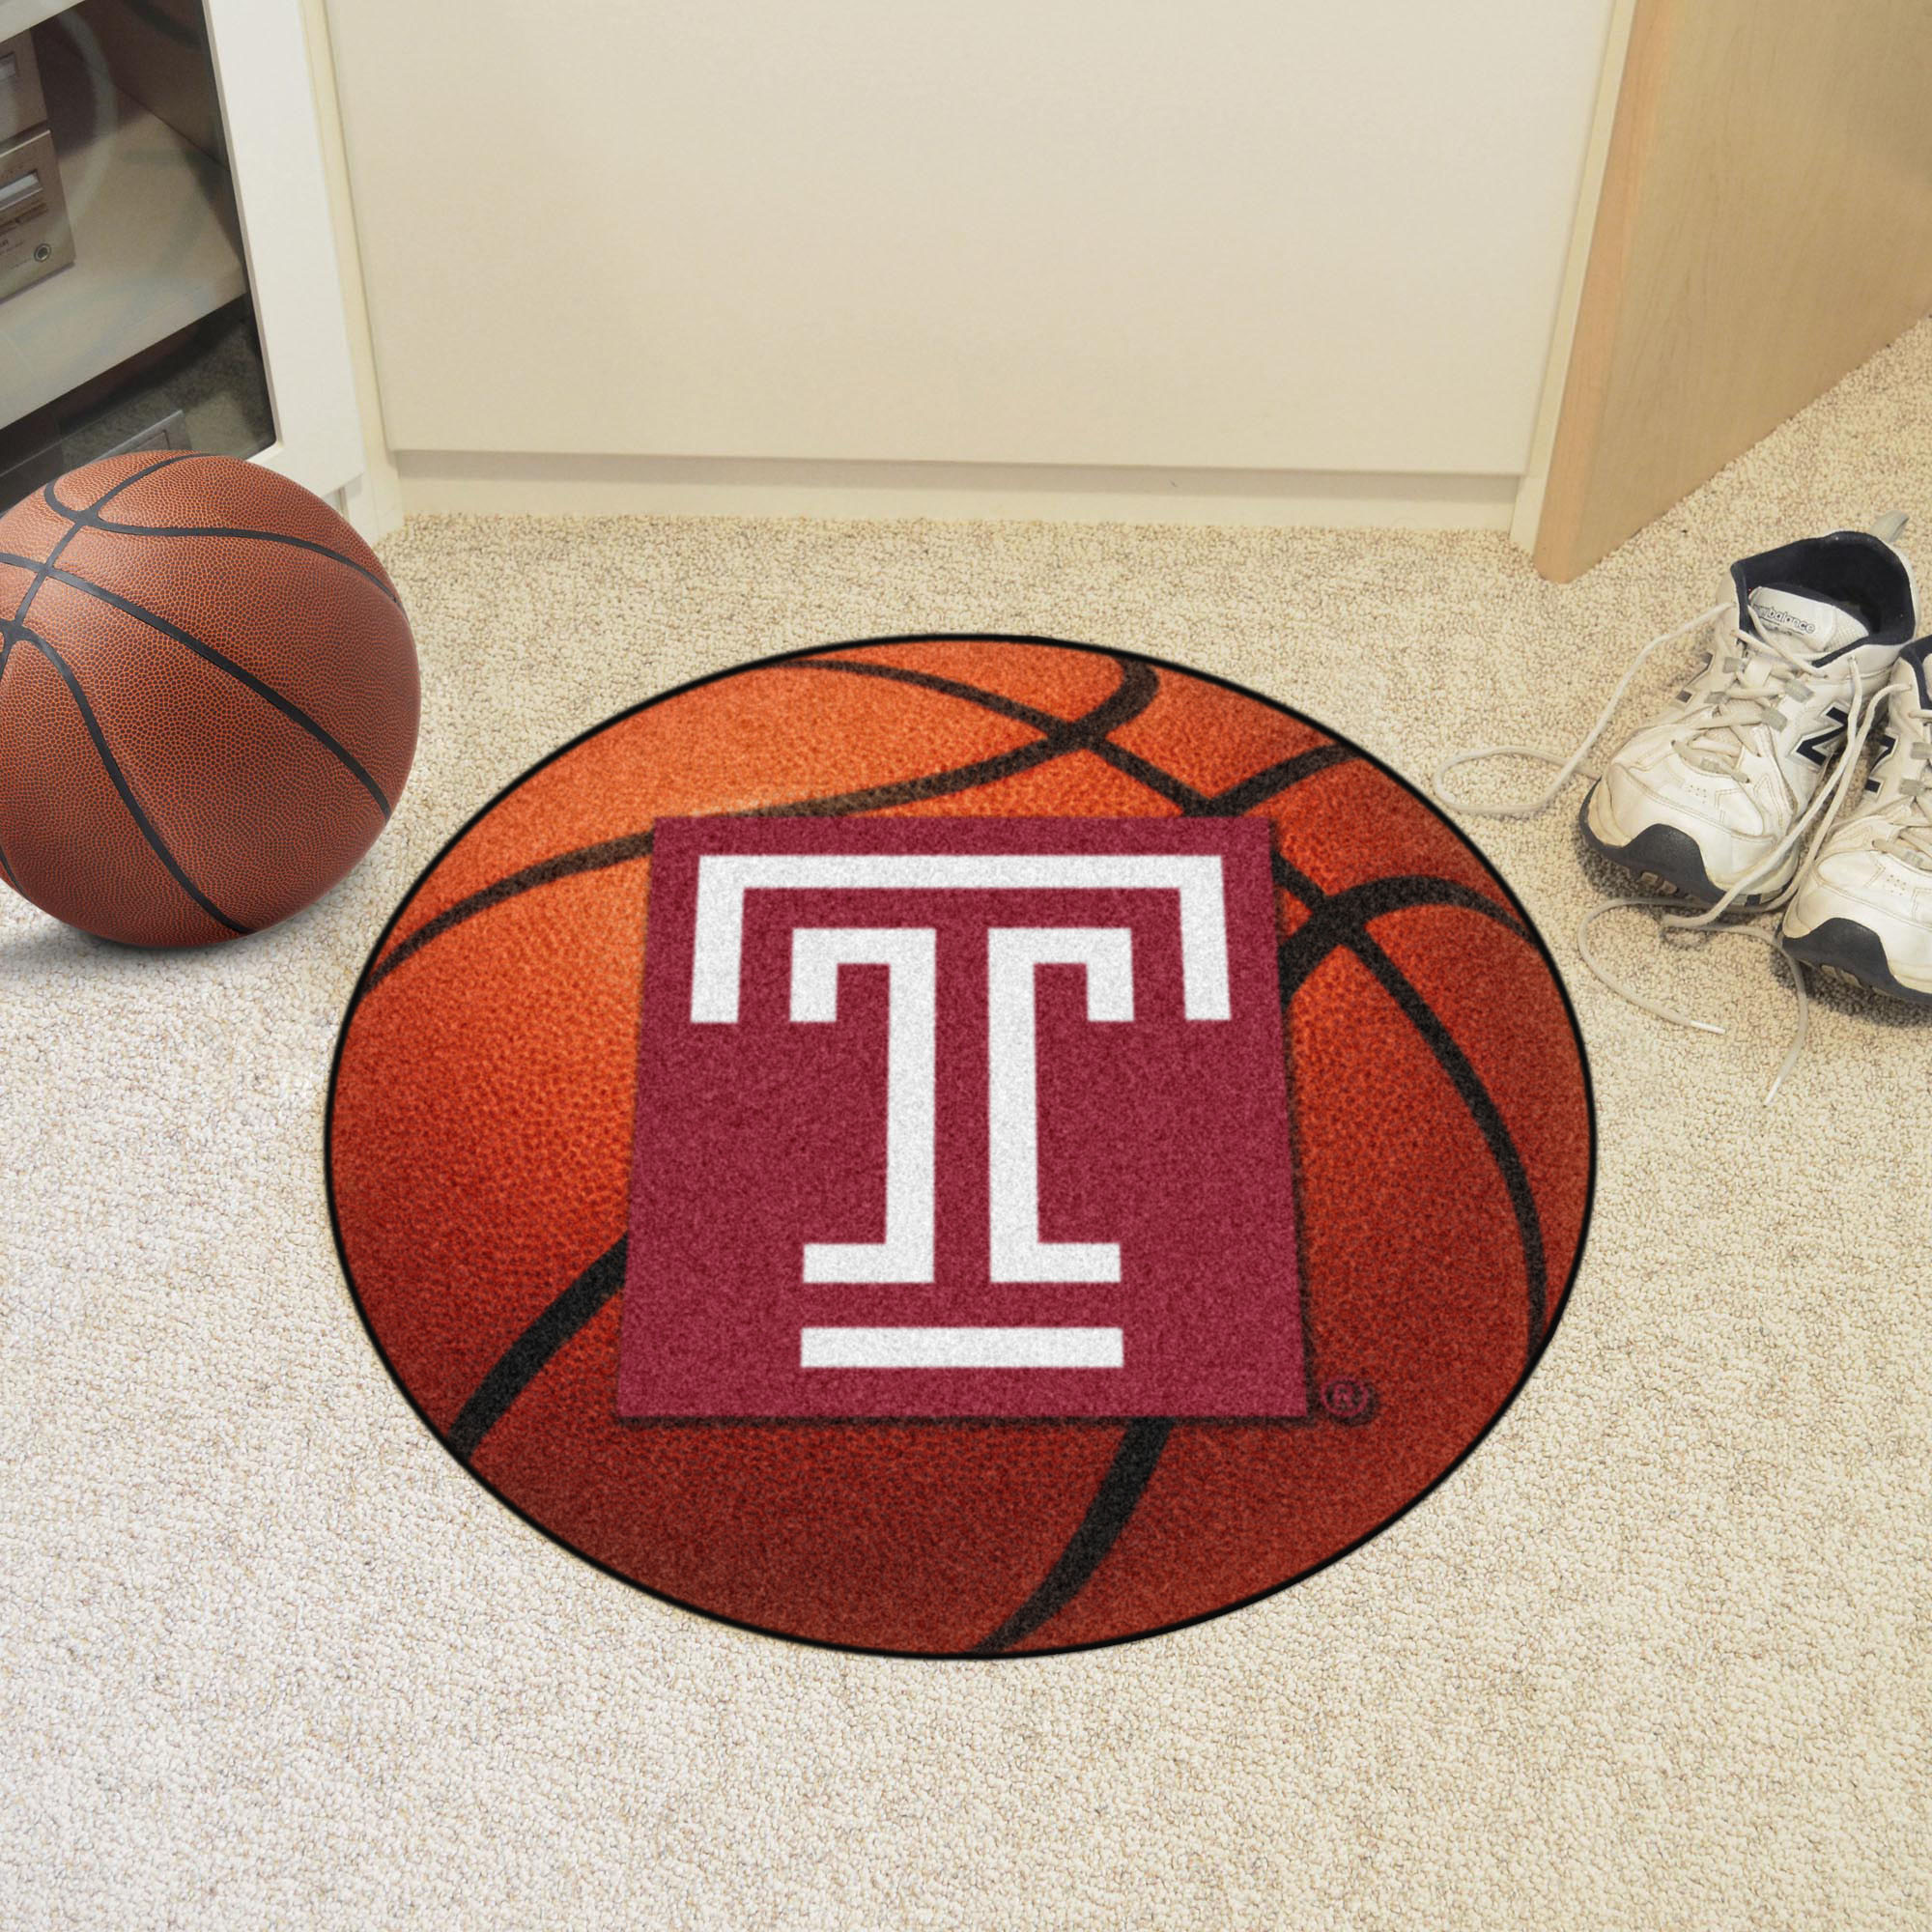 Temple University Ball Shaped Area rugs (Ball Shaped Area Rugs: Basketball)